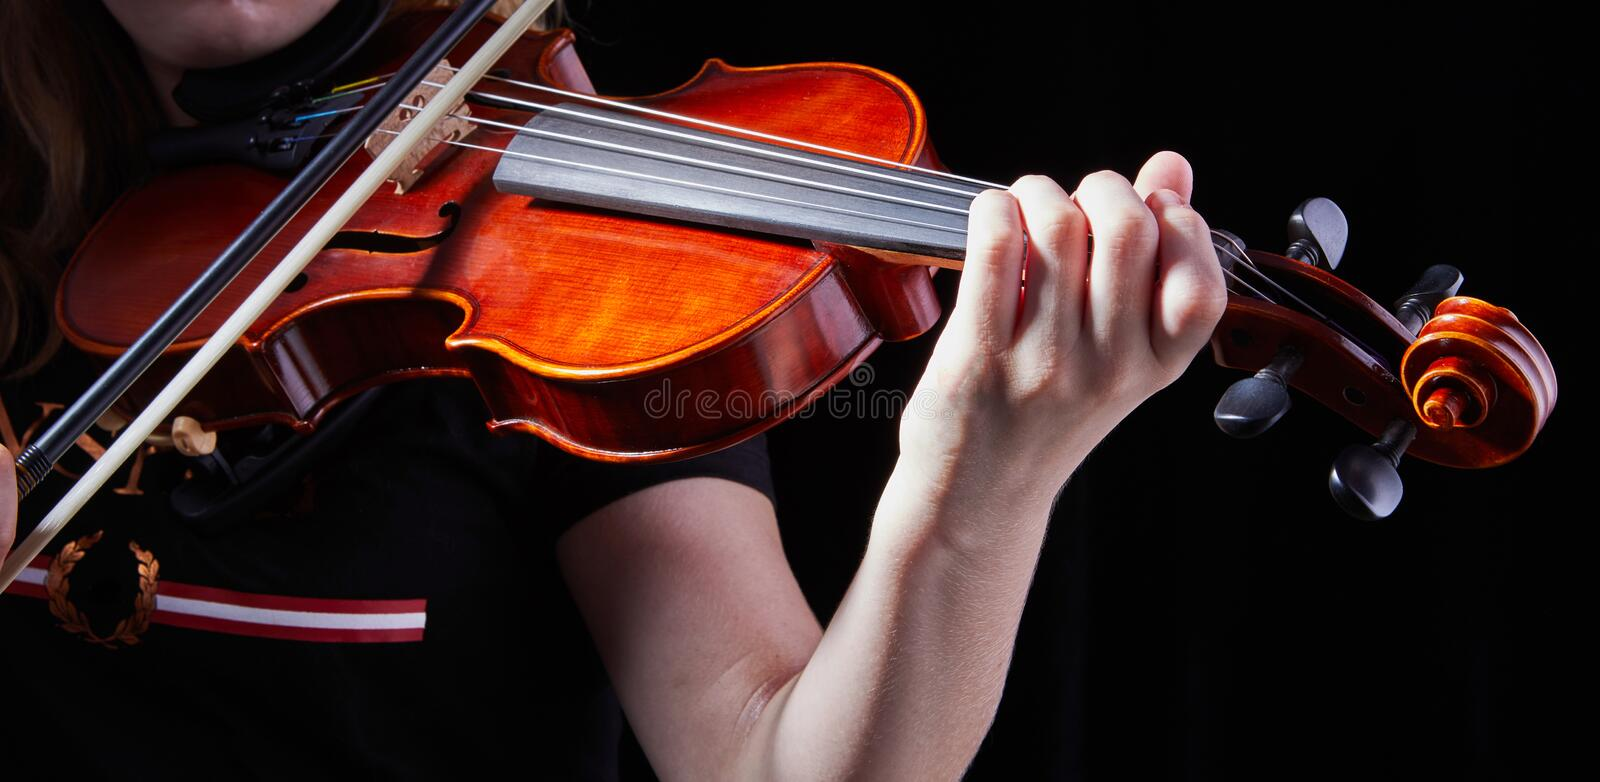 Violin classic musical instrument. Classic player hands on a black background. Details of violin playing. Orchestra, violinist, symphony, concert, musician stock photo